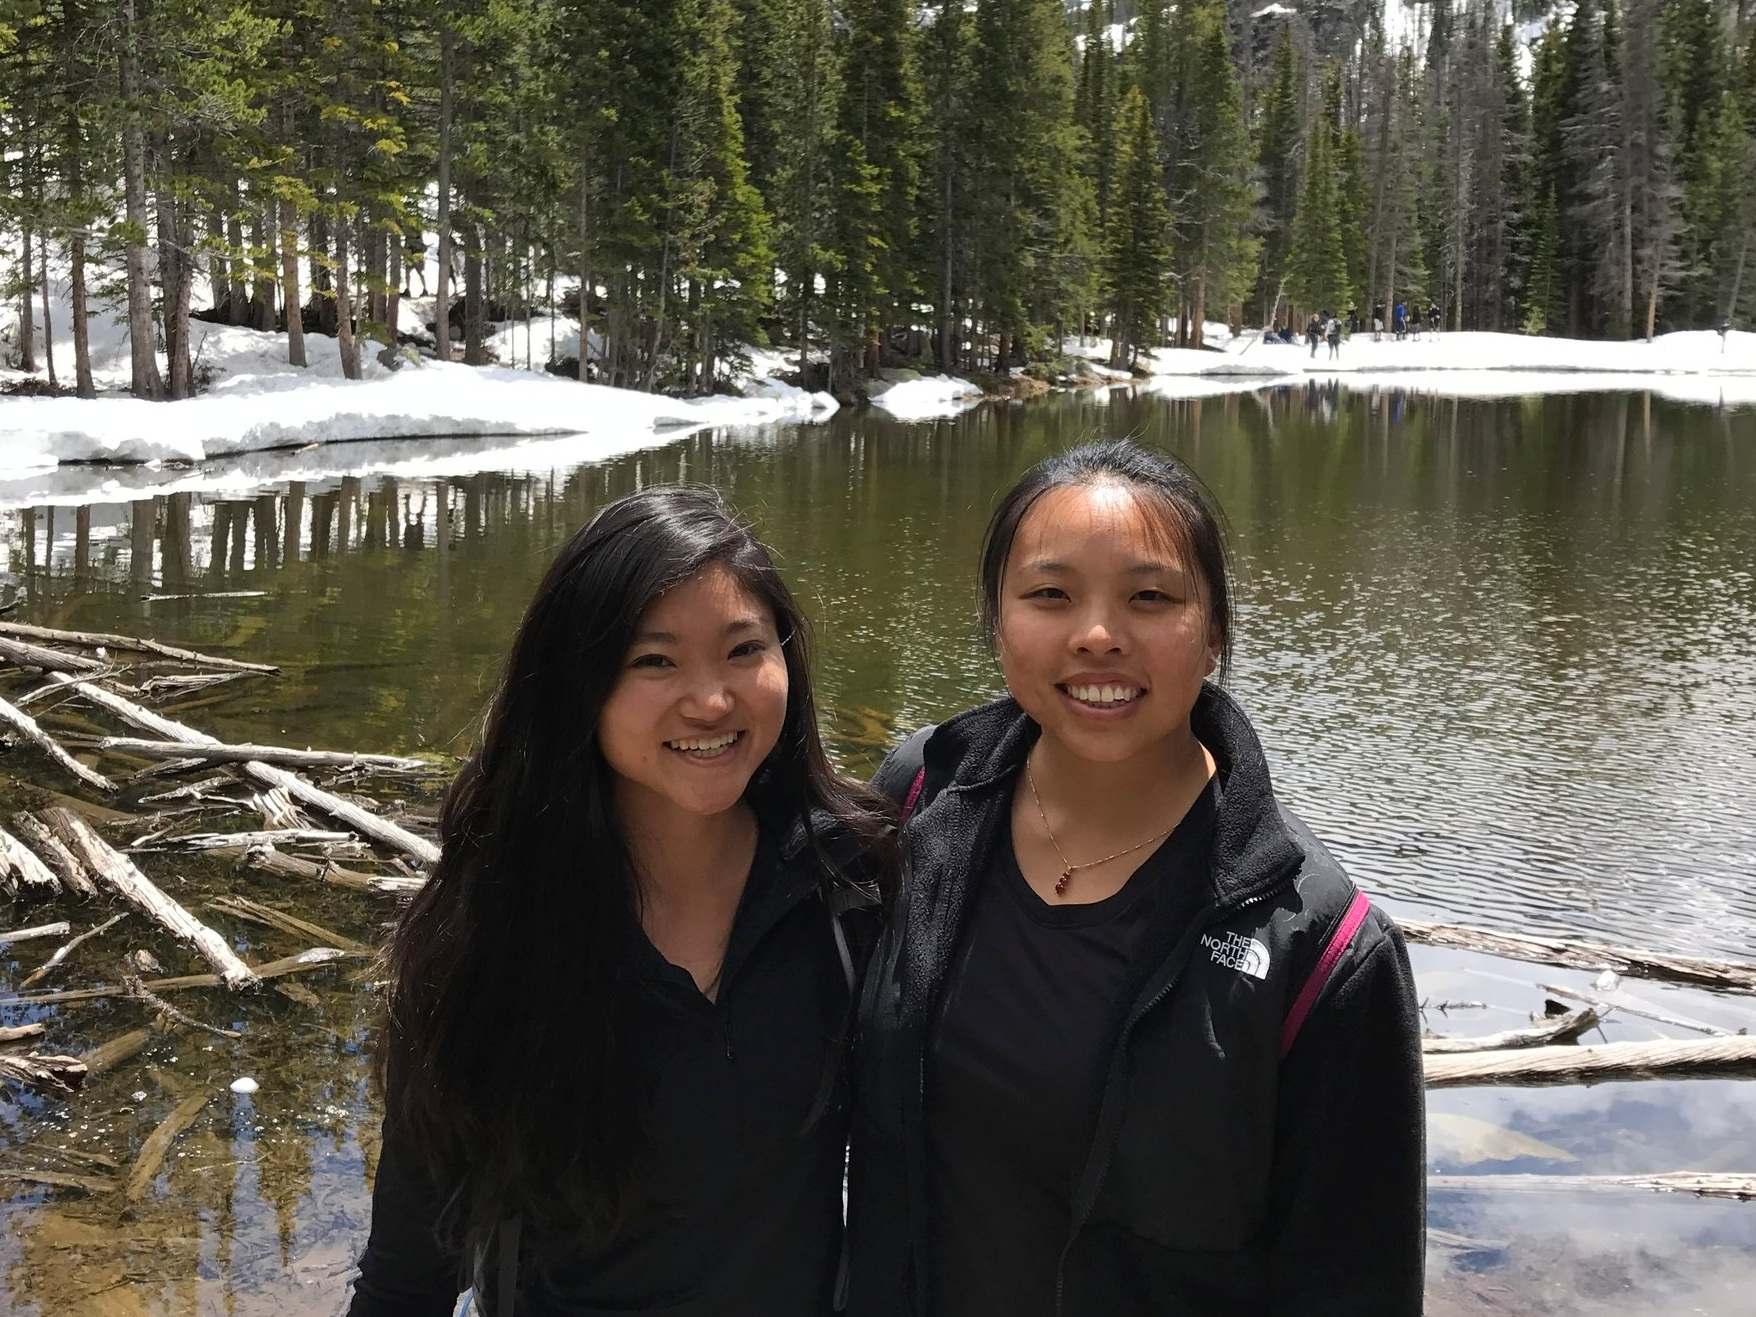 Sabrina Louie   Sab and Kristie met in college at UCLA through dragonboat. They went on many boba runs, made ugly Christmas sweaters together, and even lived together for a year after college! Despite living across country from each other, they've maintained their friendship through trips to Denver, Iceland, NYC, Disneyworld, and more!